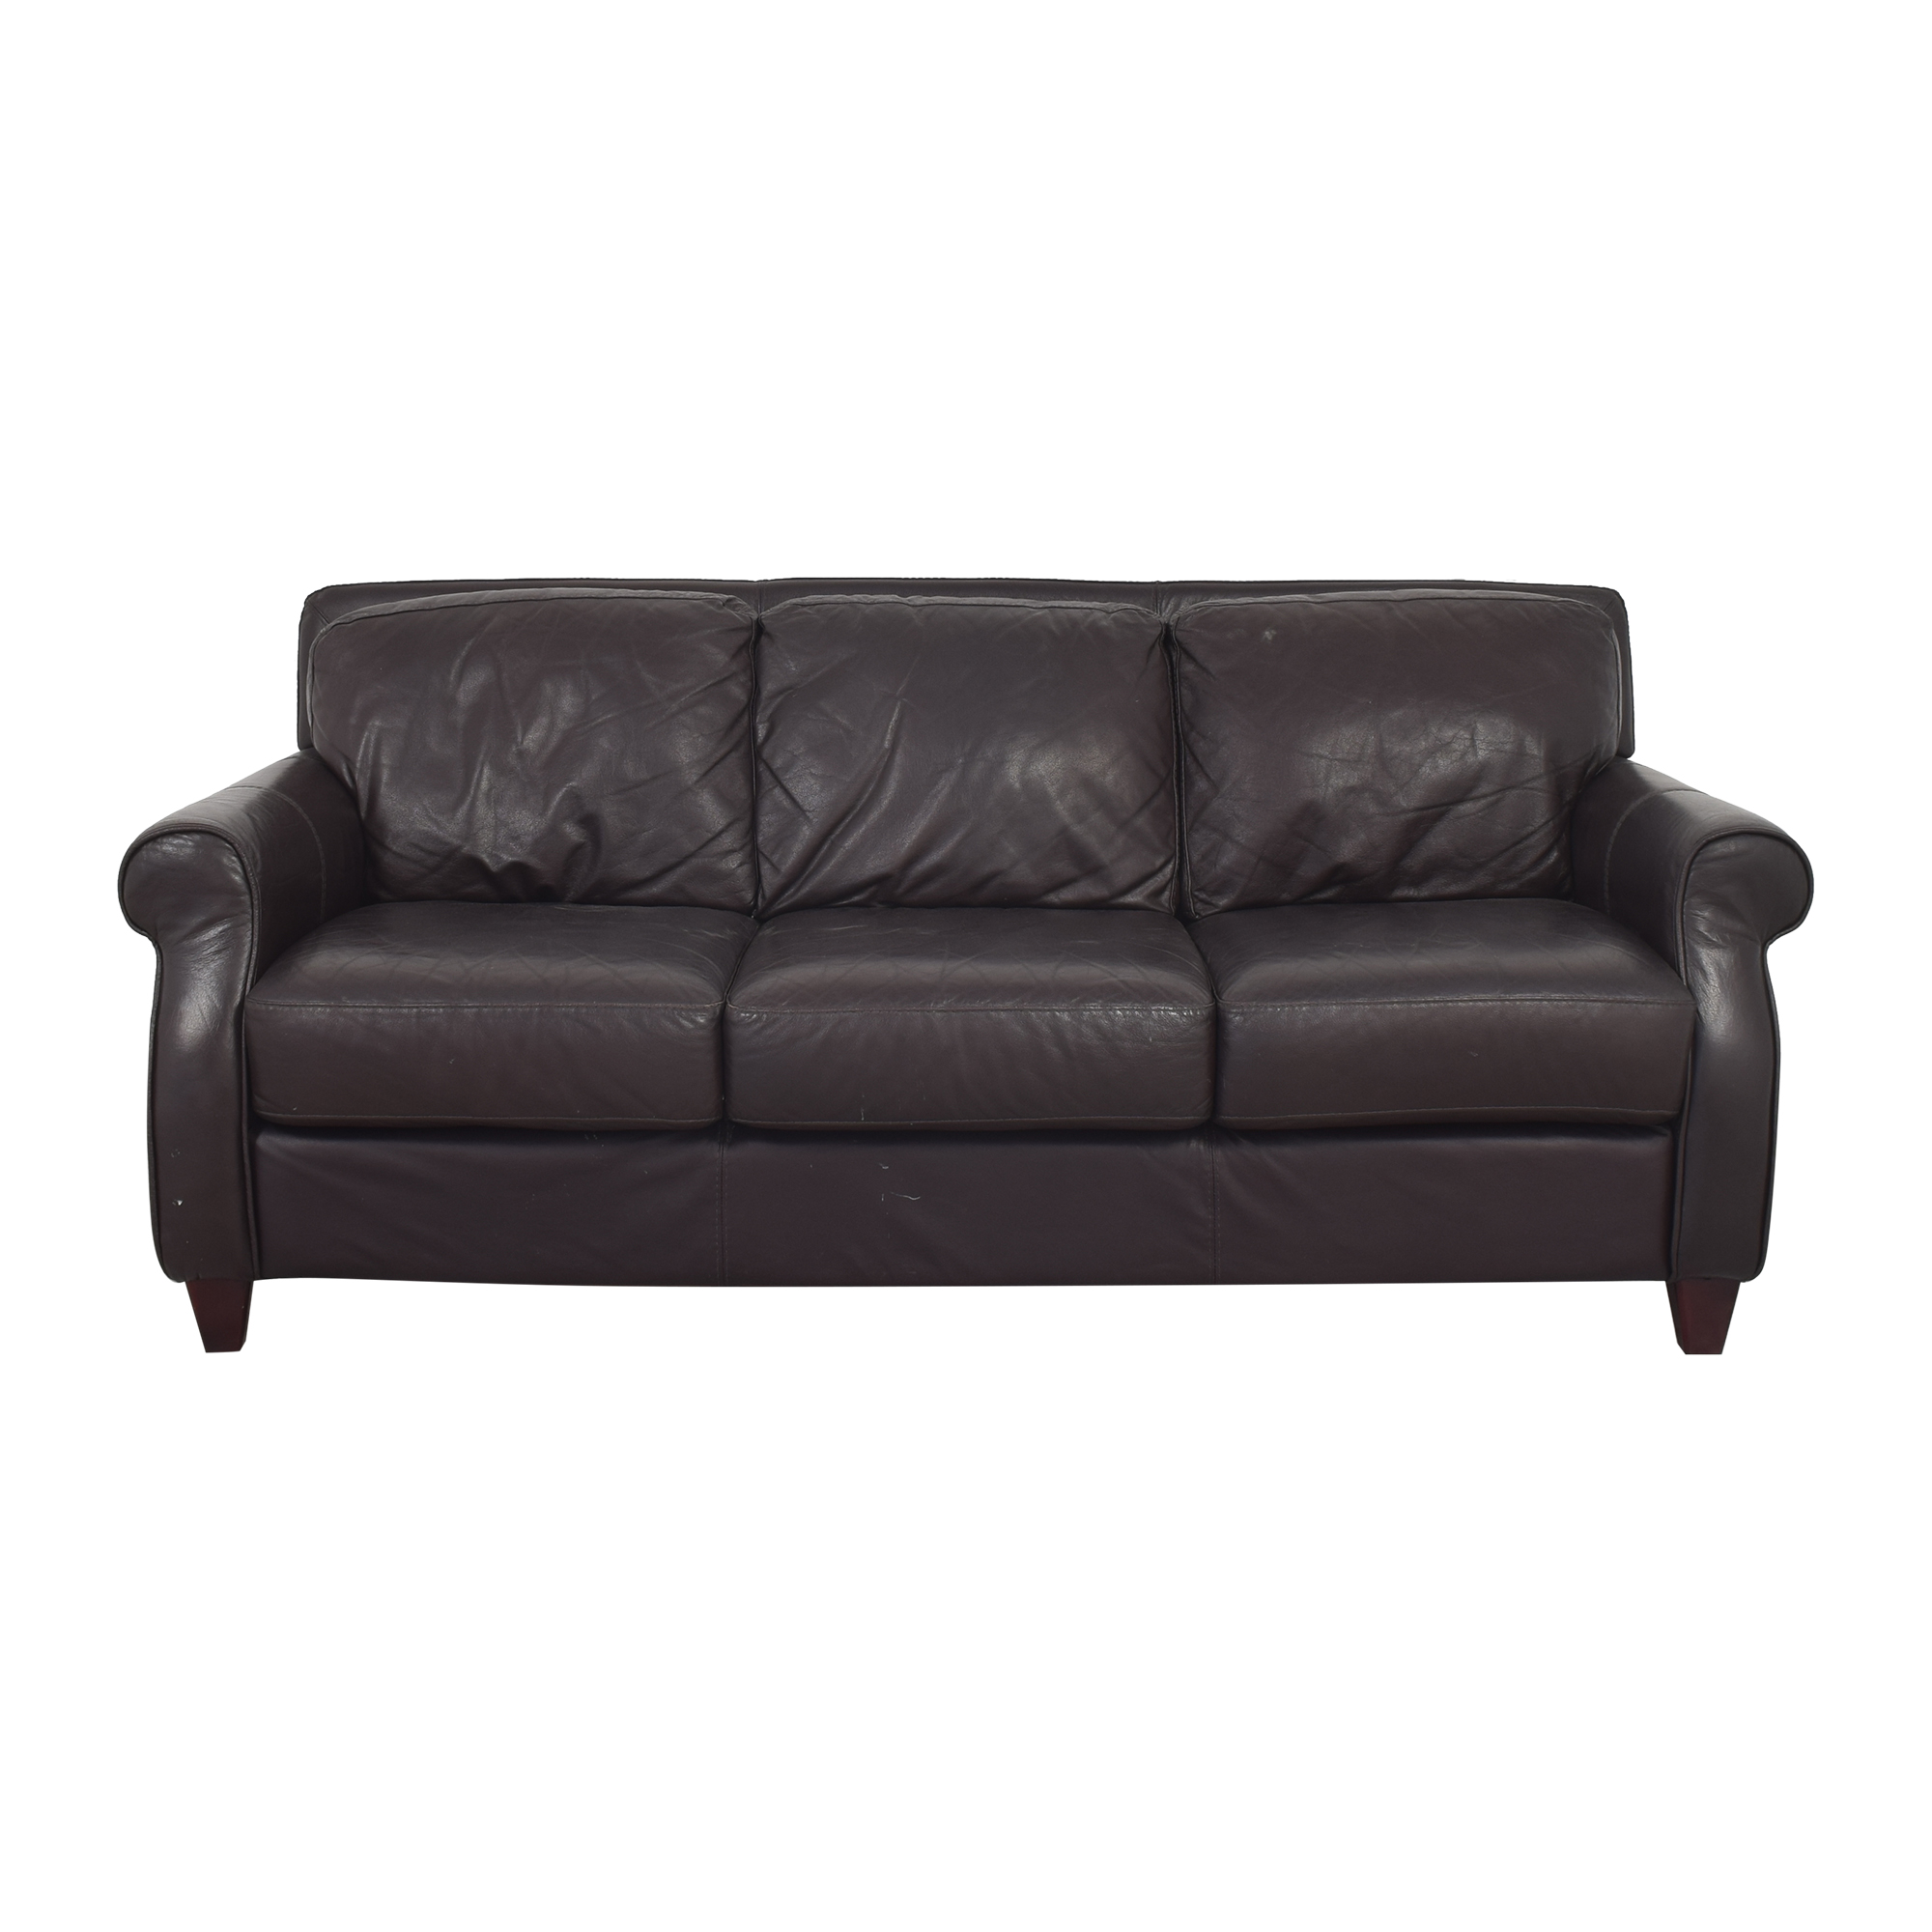 Raymour & Flanigan Raymour & Flanigan Roll Arm Sofa